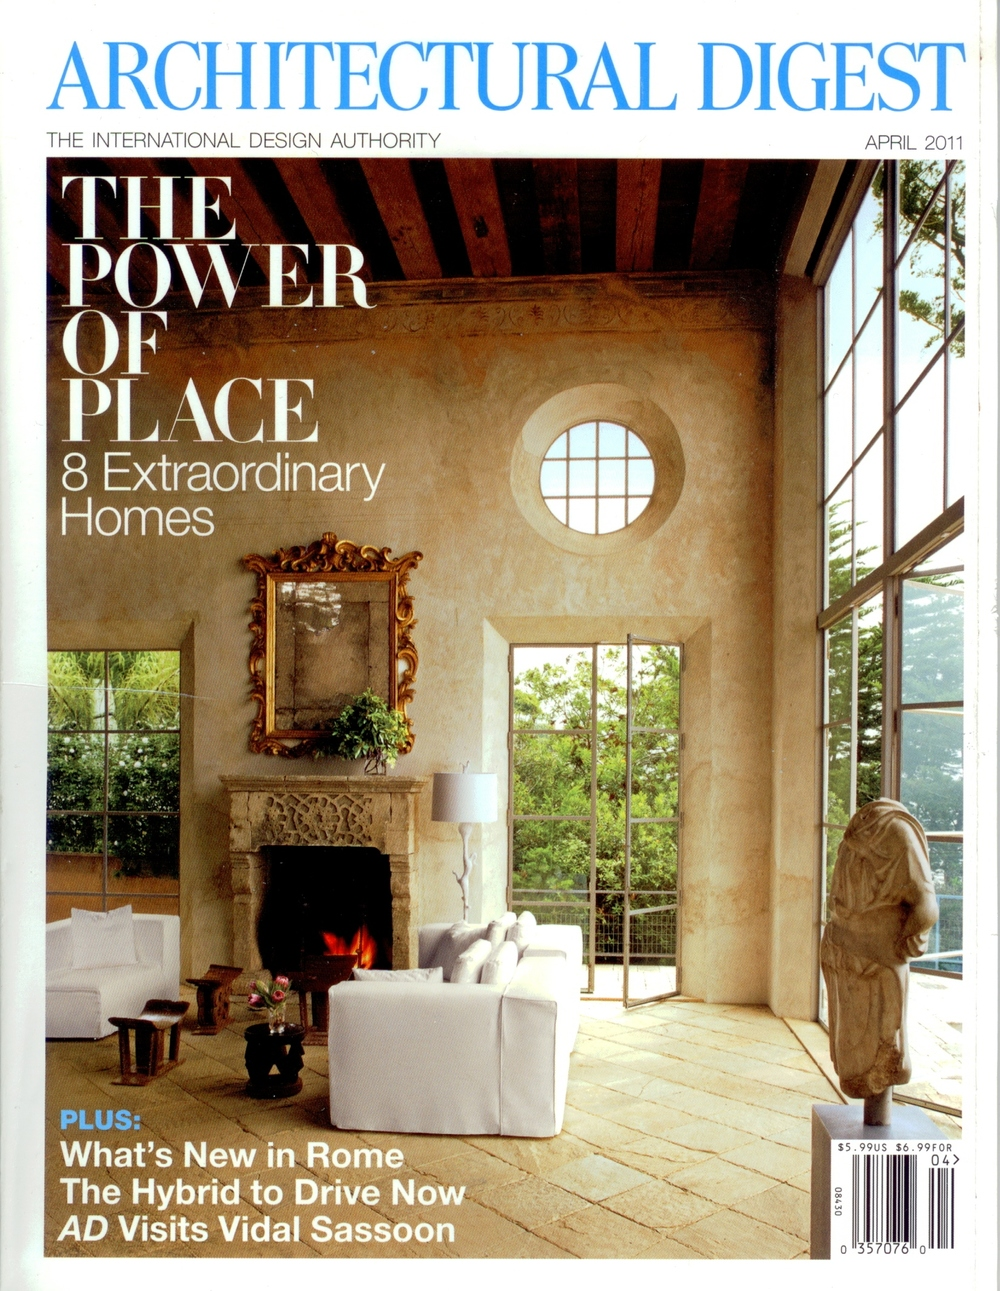 Architectural Digest - April 2011